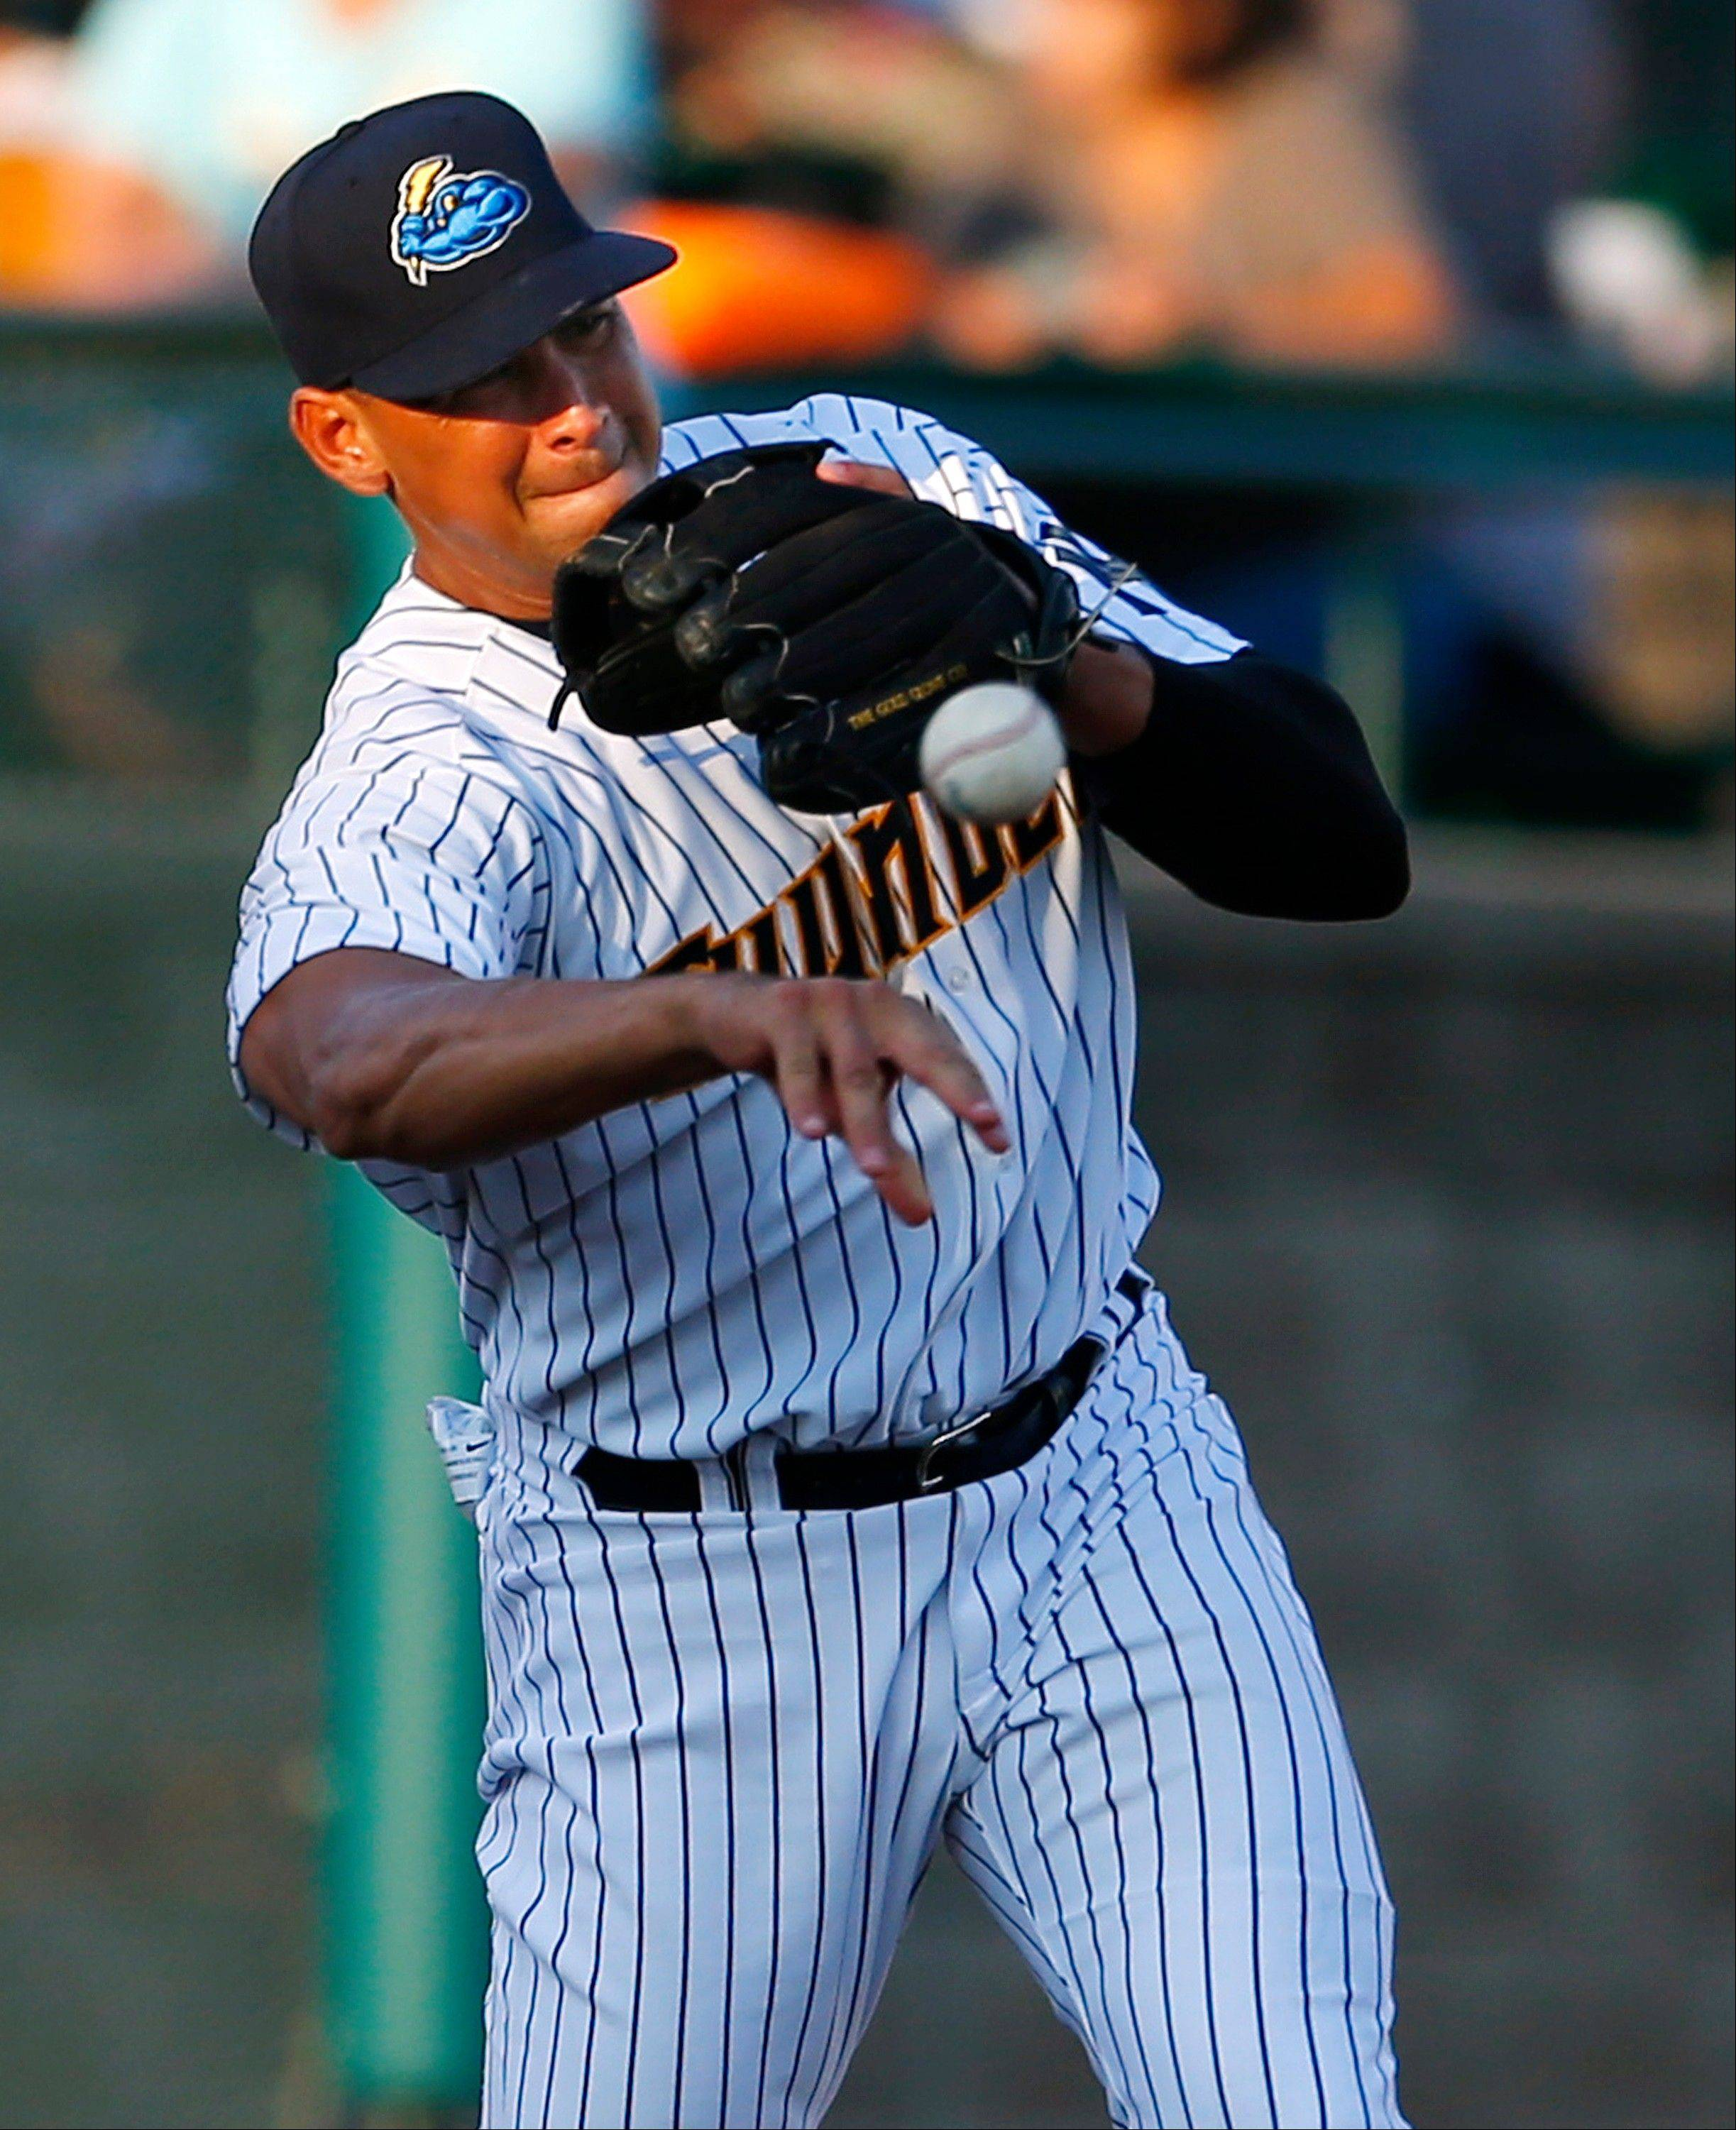 Alex Rodriguez, the biggest name in the Biogenesis case, throws to second base Saturday during a Class AA game in Trenton, N.J.